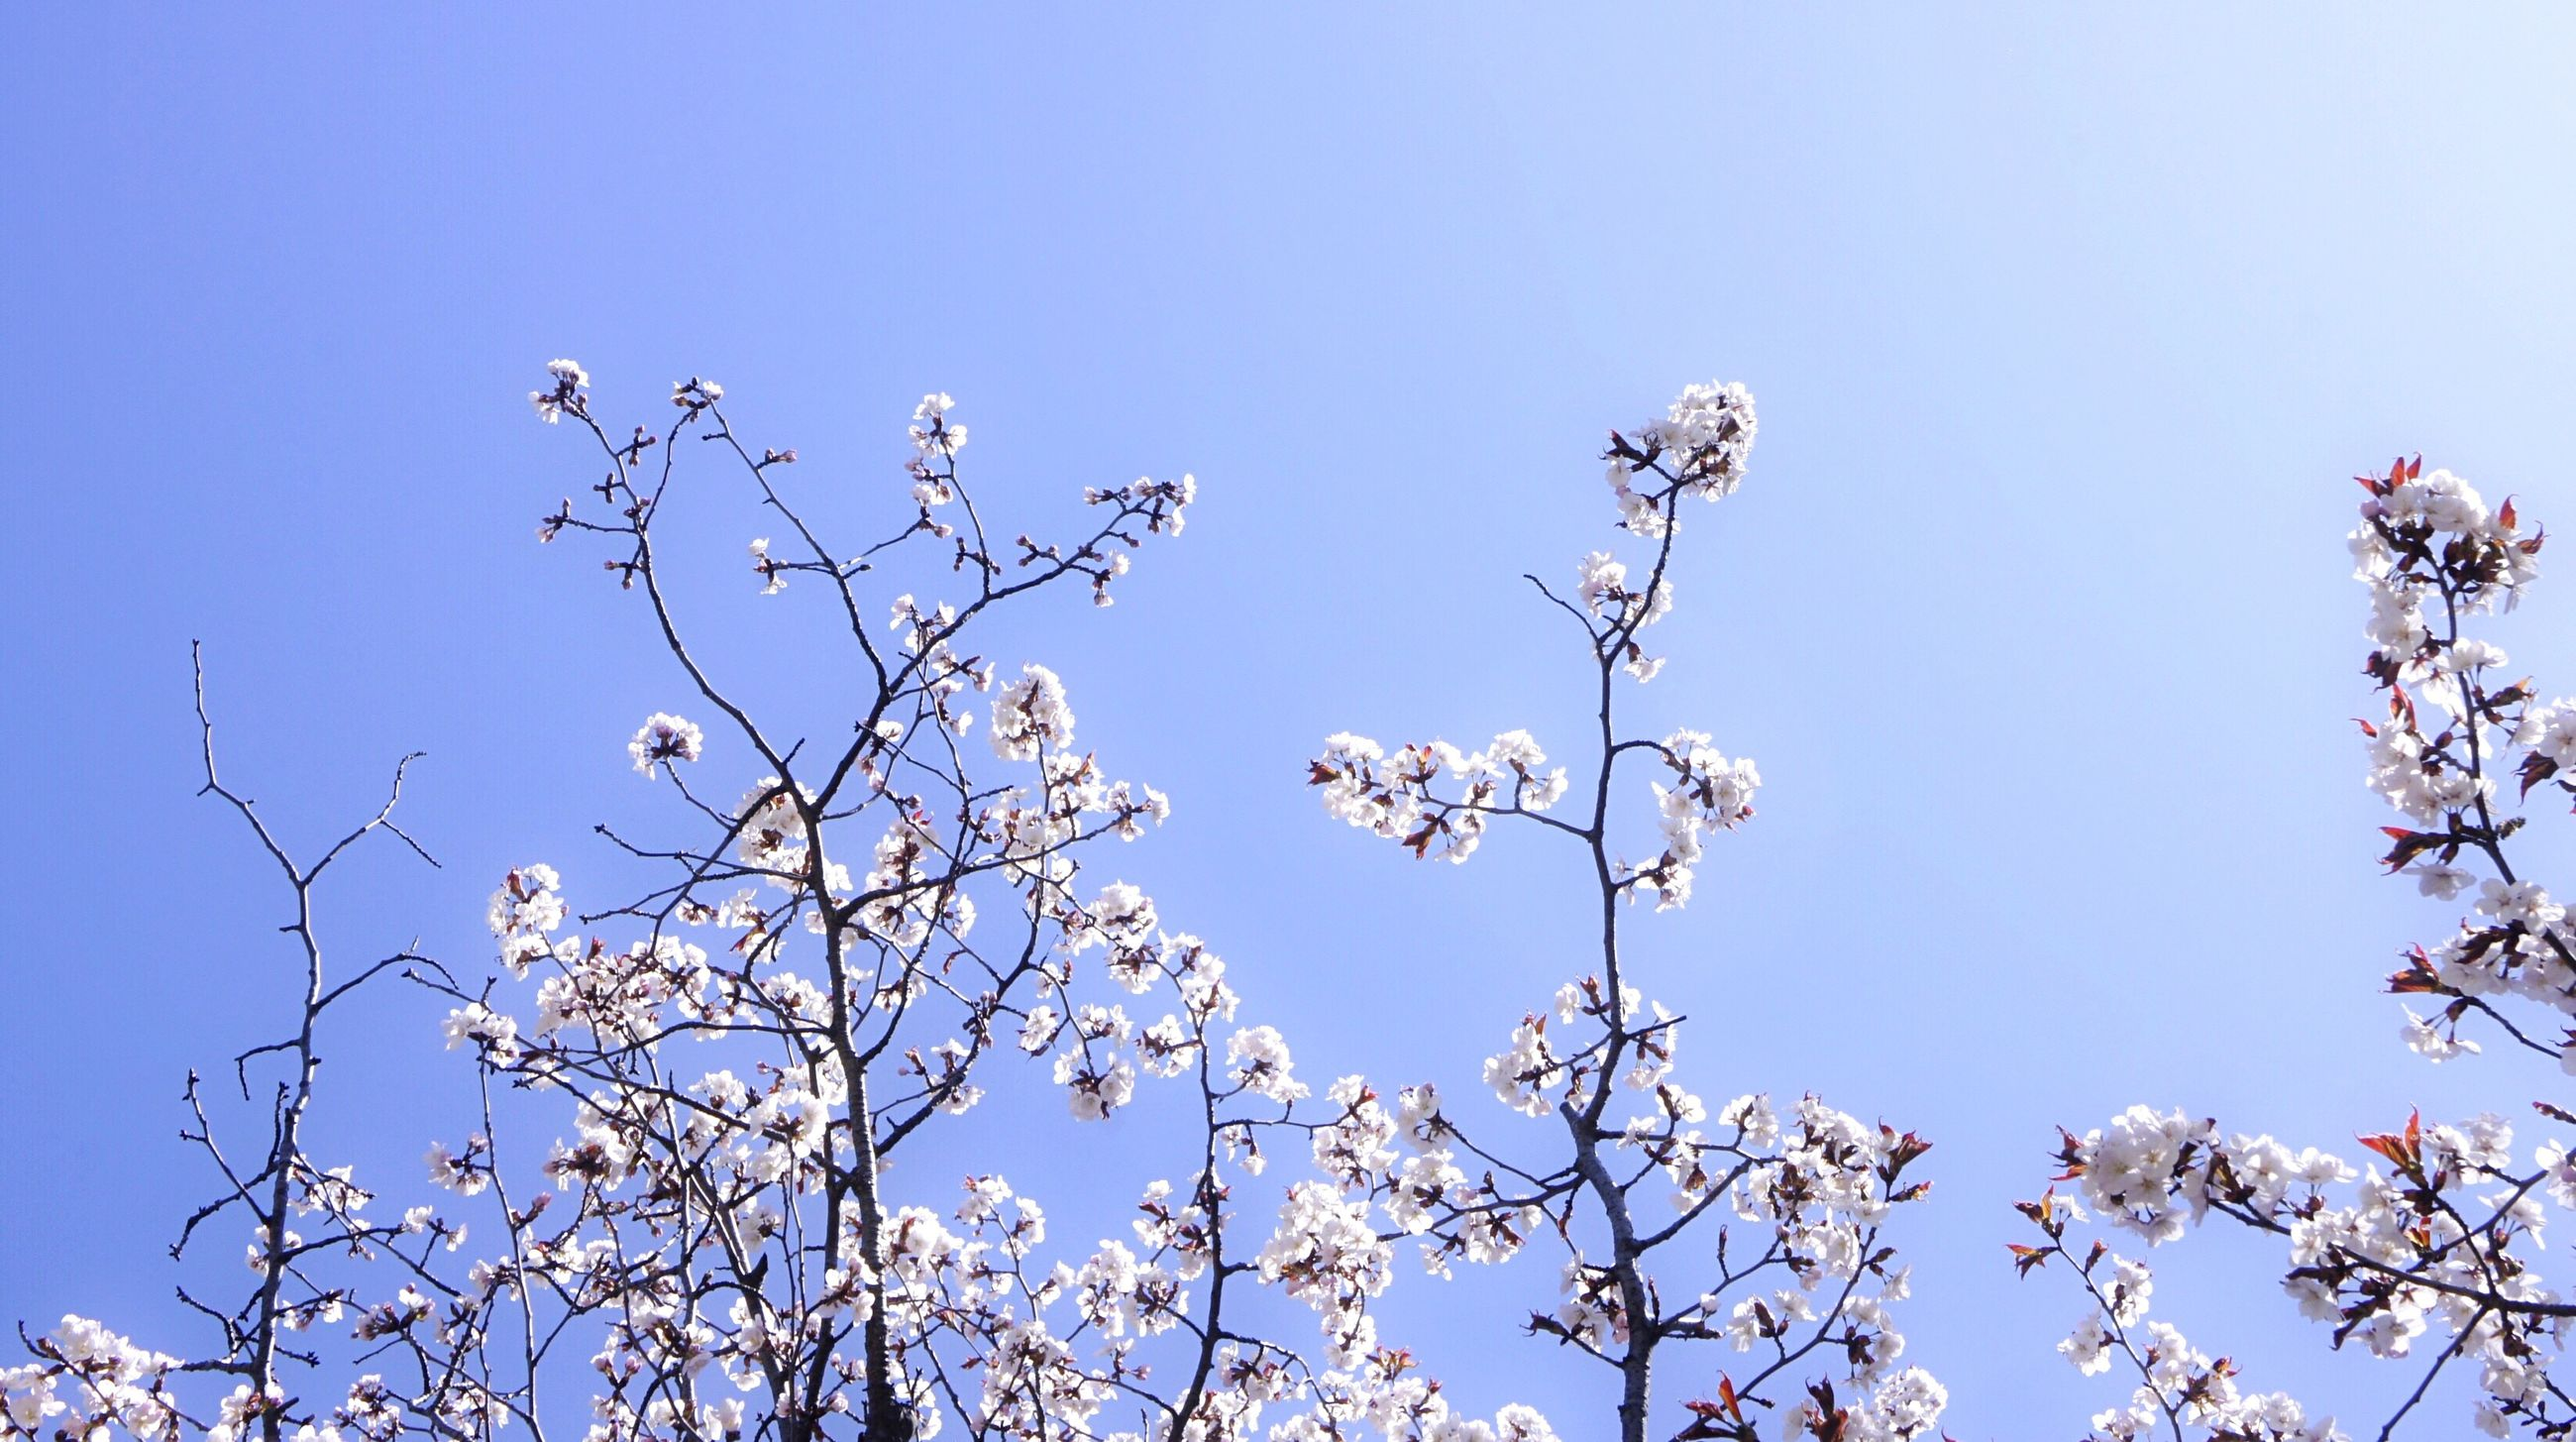 flower, nature, beauty in nature, fragility, tree, branch, clear sky, blossom, growth, low angle view, day, blue, no people, springtime, outdoors, freshness, petal, twig, blooming, flower head, sky, close-up